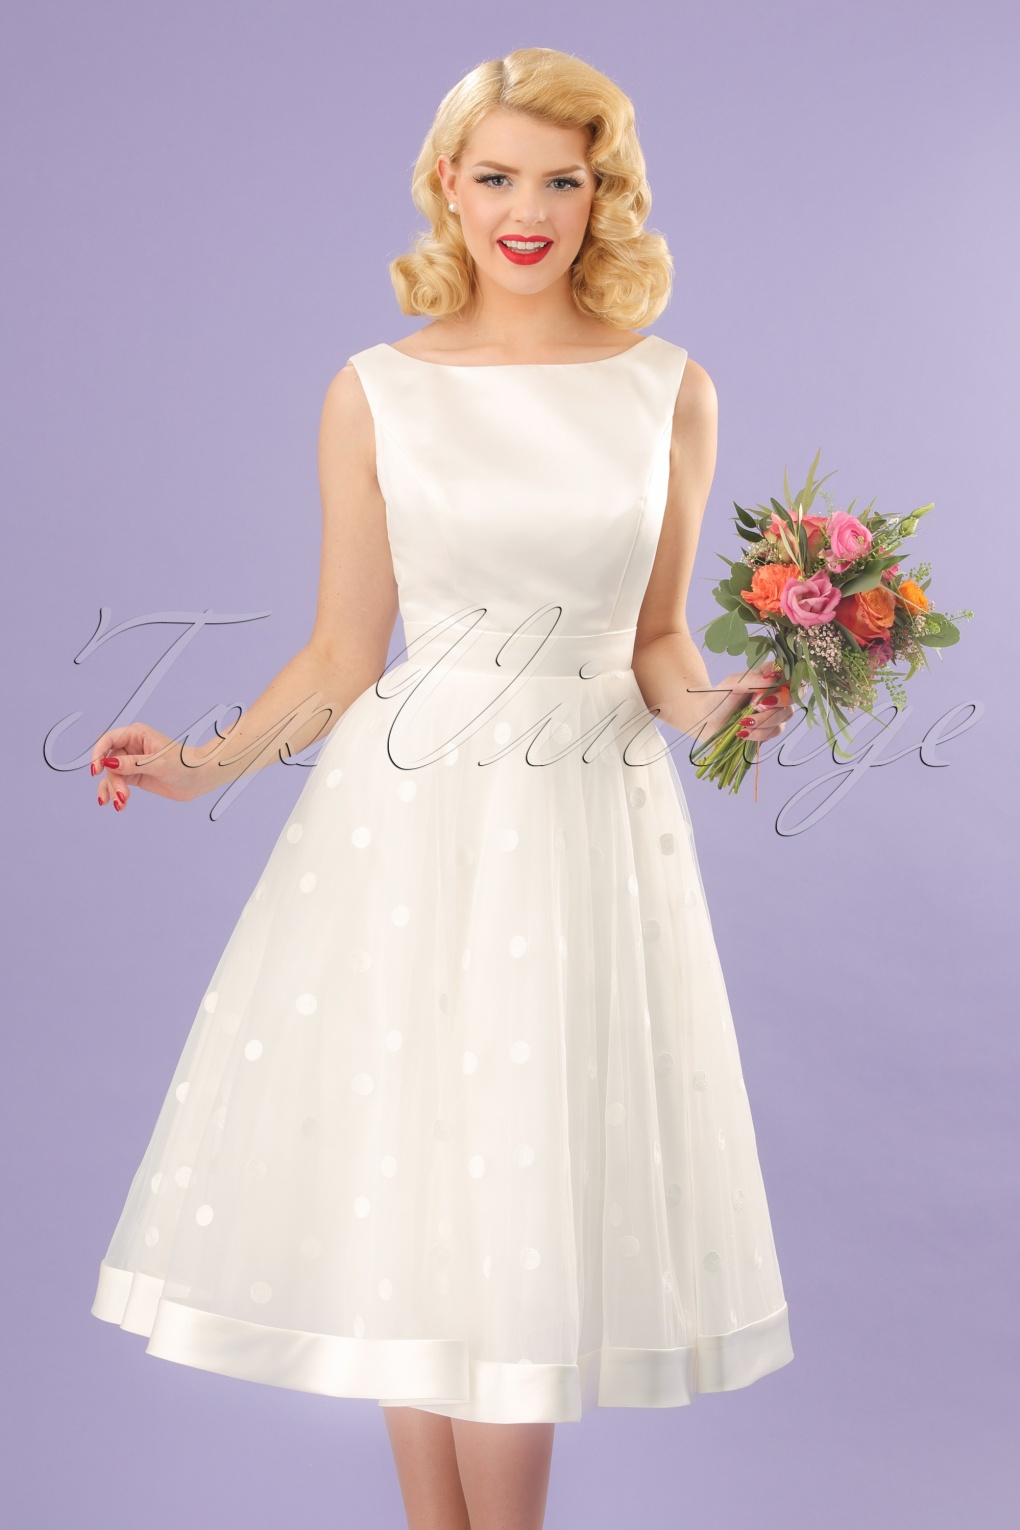 50s Wedding Dress, 1950s Style Wedding Dresses, Rockabilly Weddings